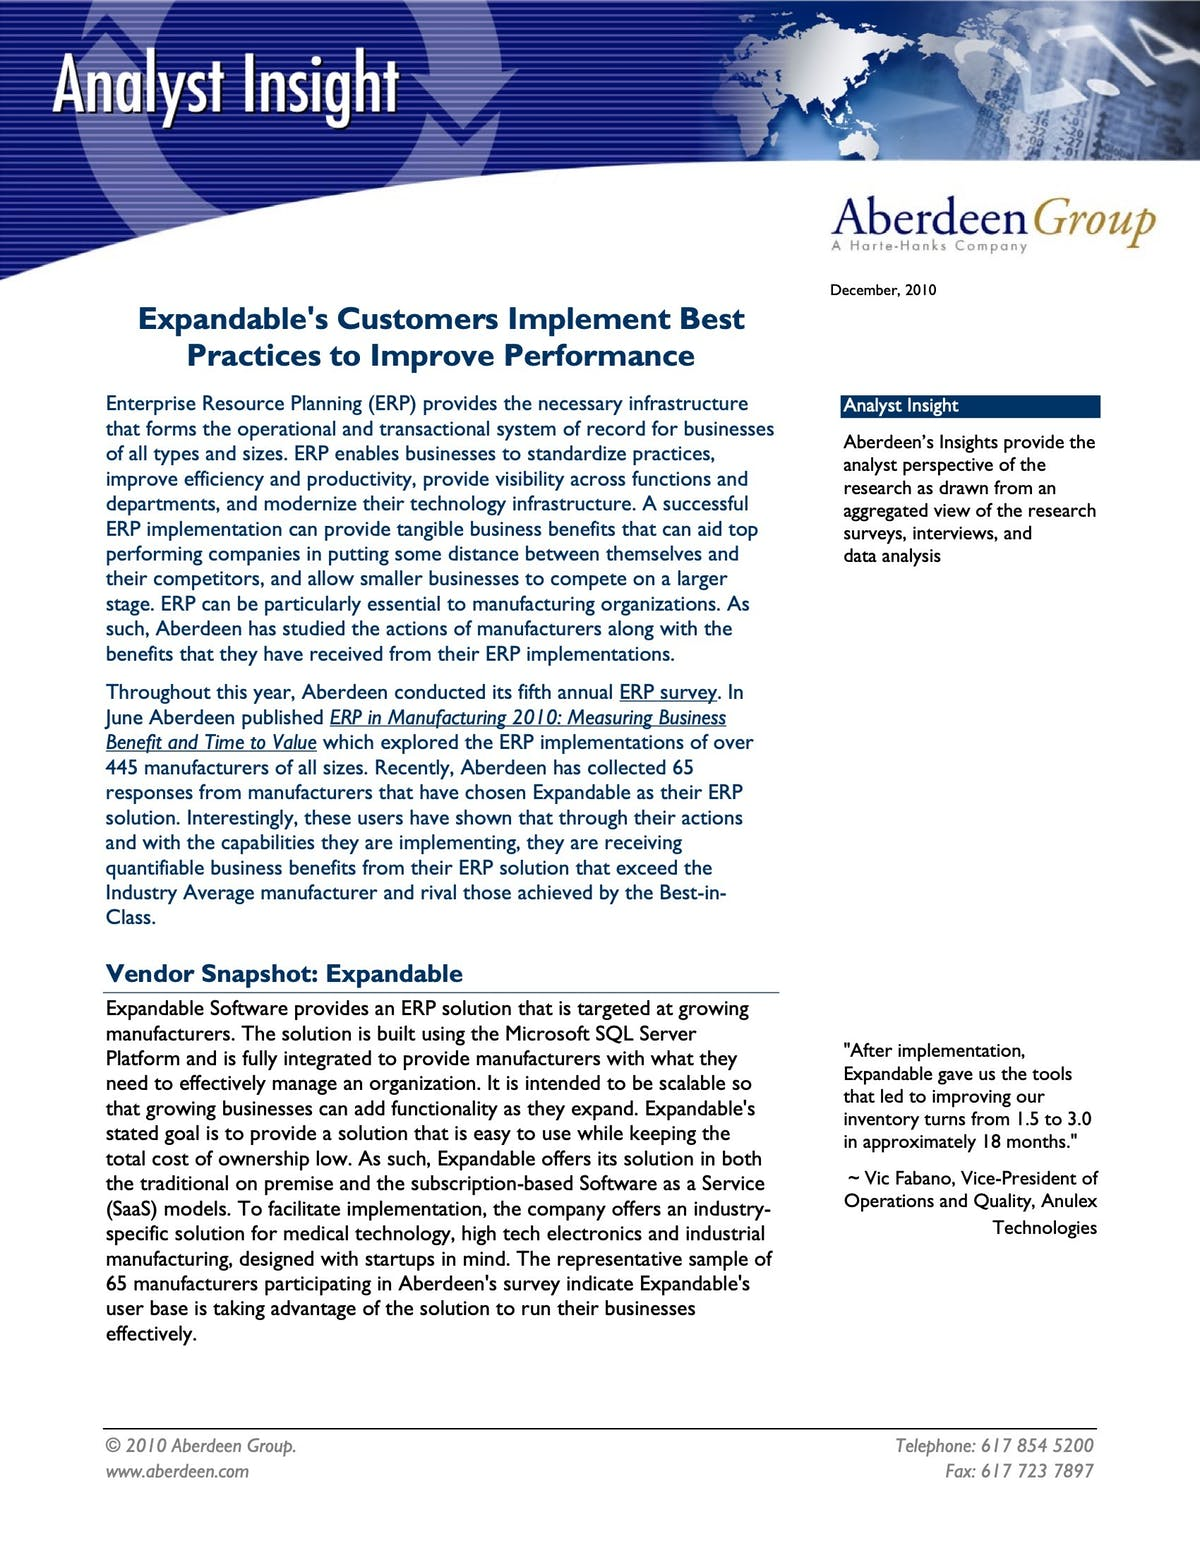 Expandable ERP White Paper - Expandable's Customers Implement Best Practices to Improve Performance